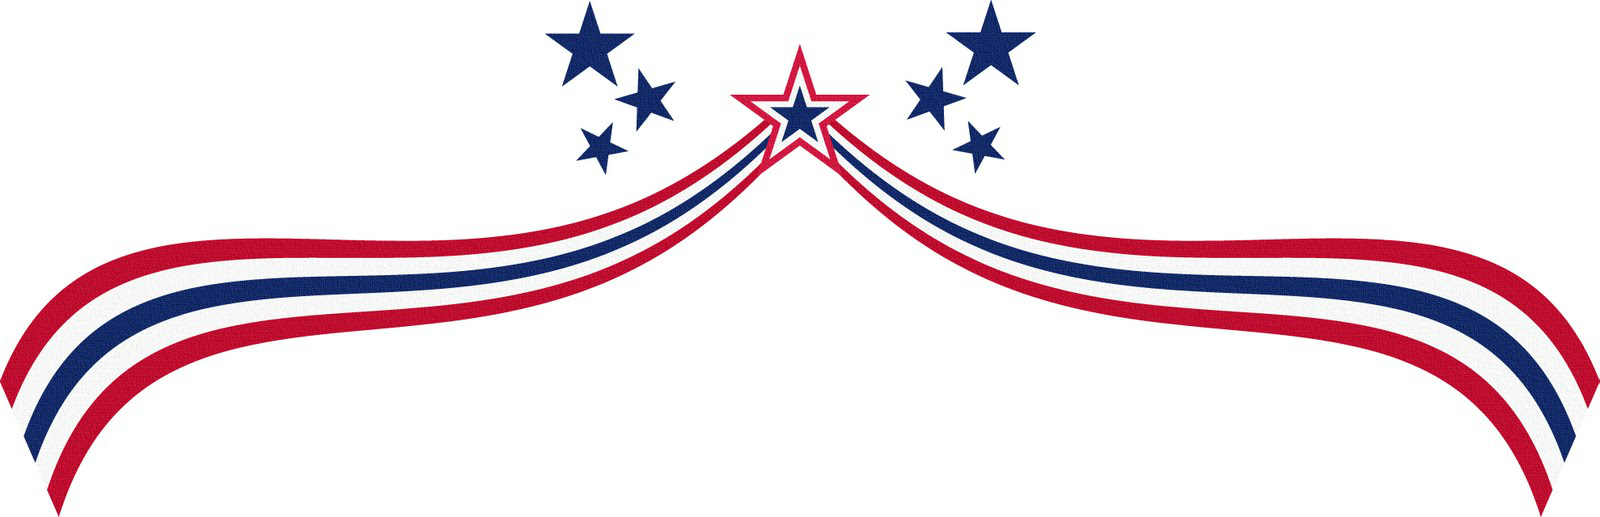 1600x517 Clip Art Independence Day Clip Art